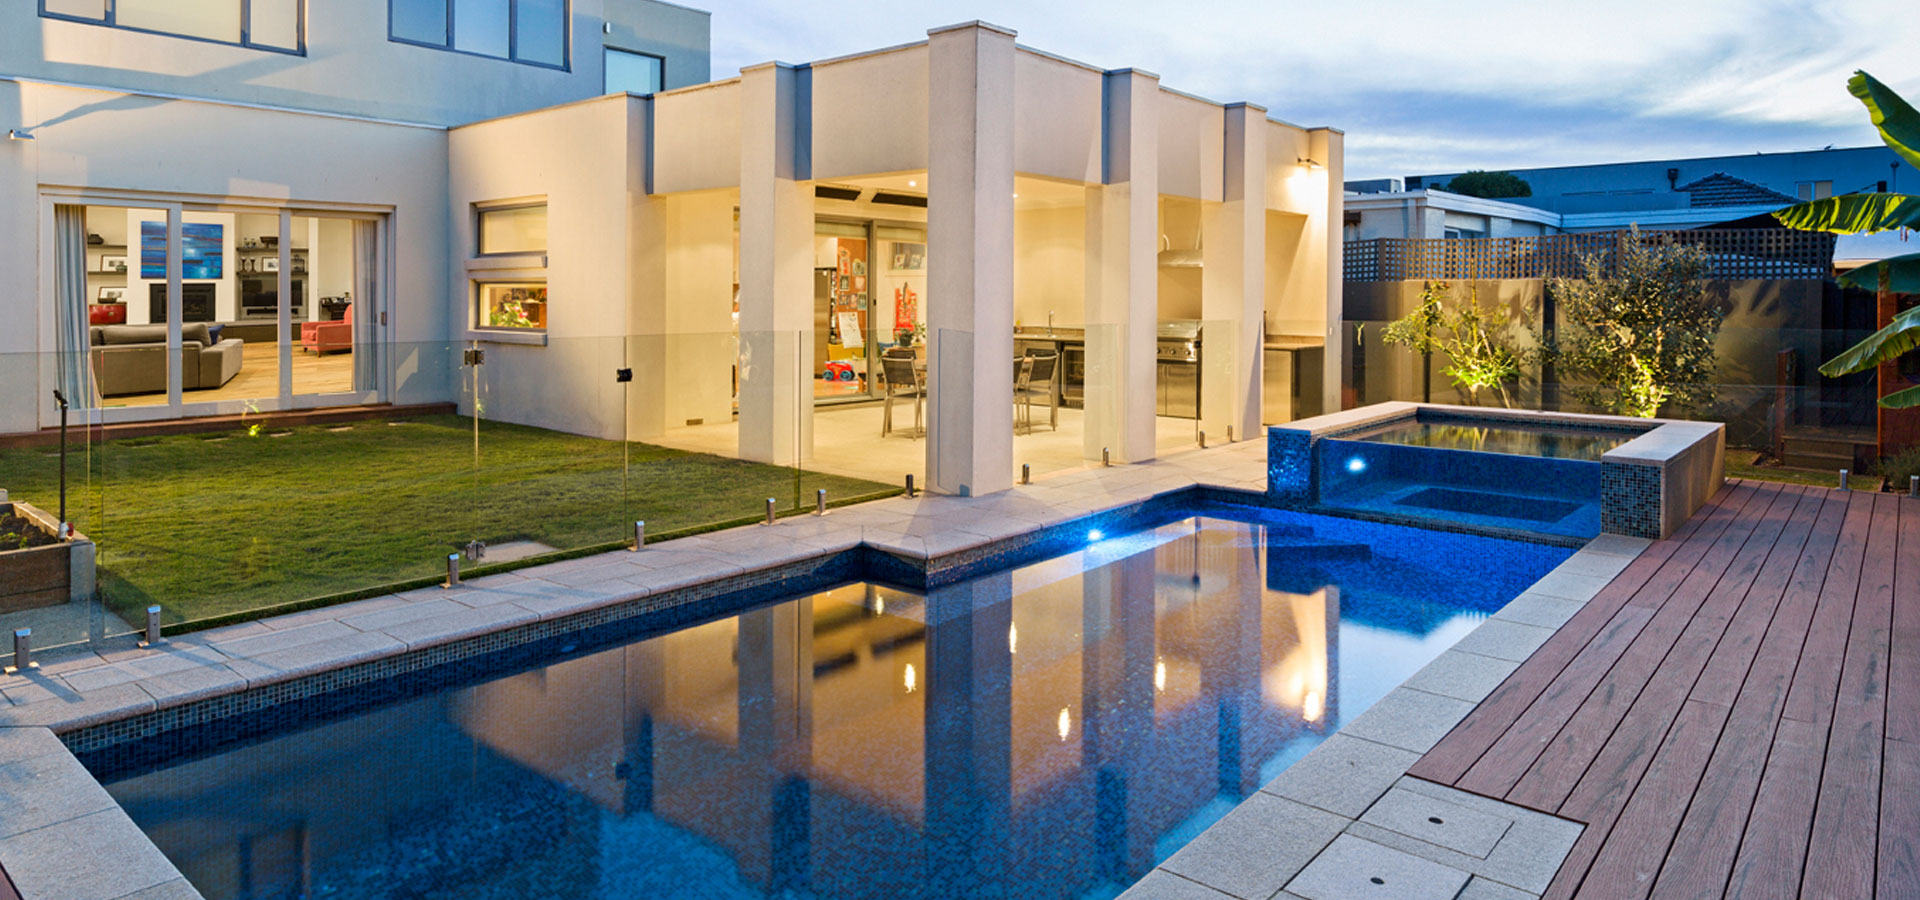 caulfield landscape design and pool